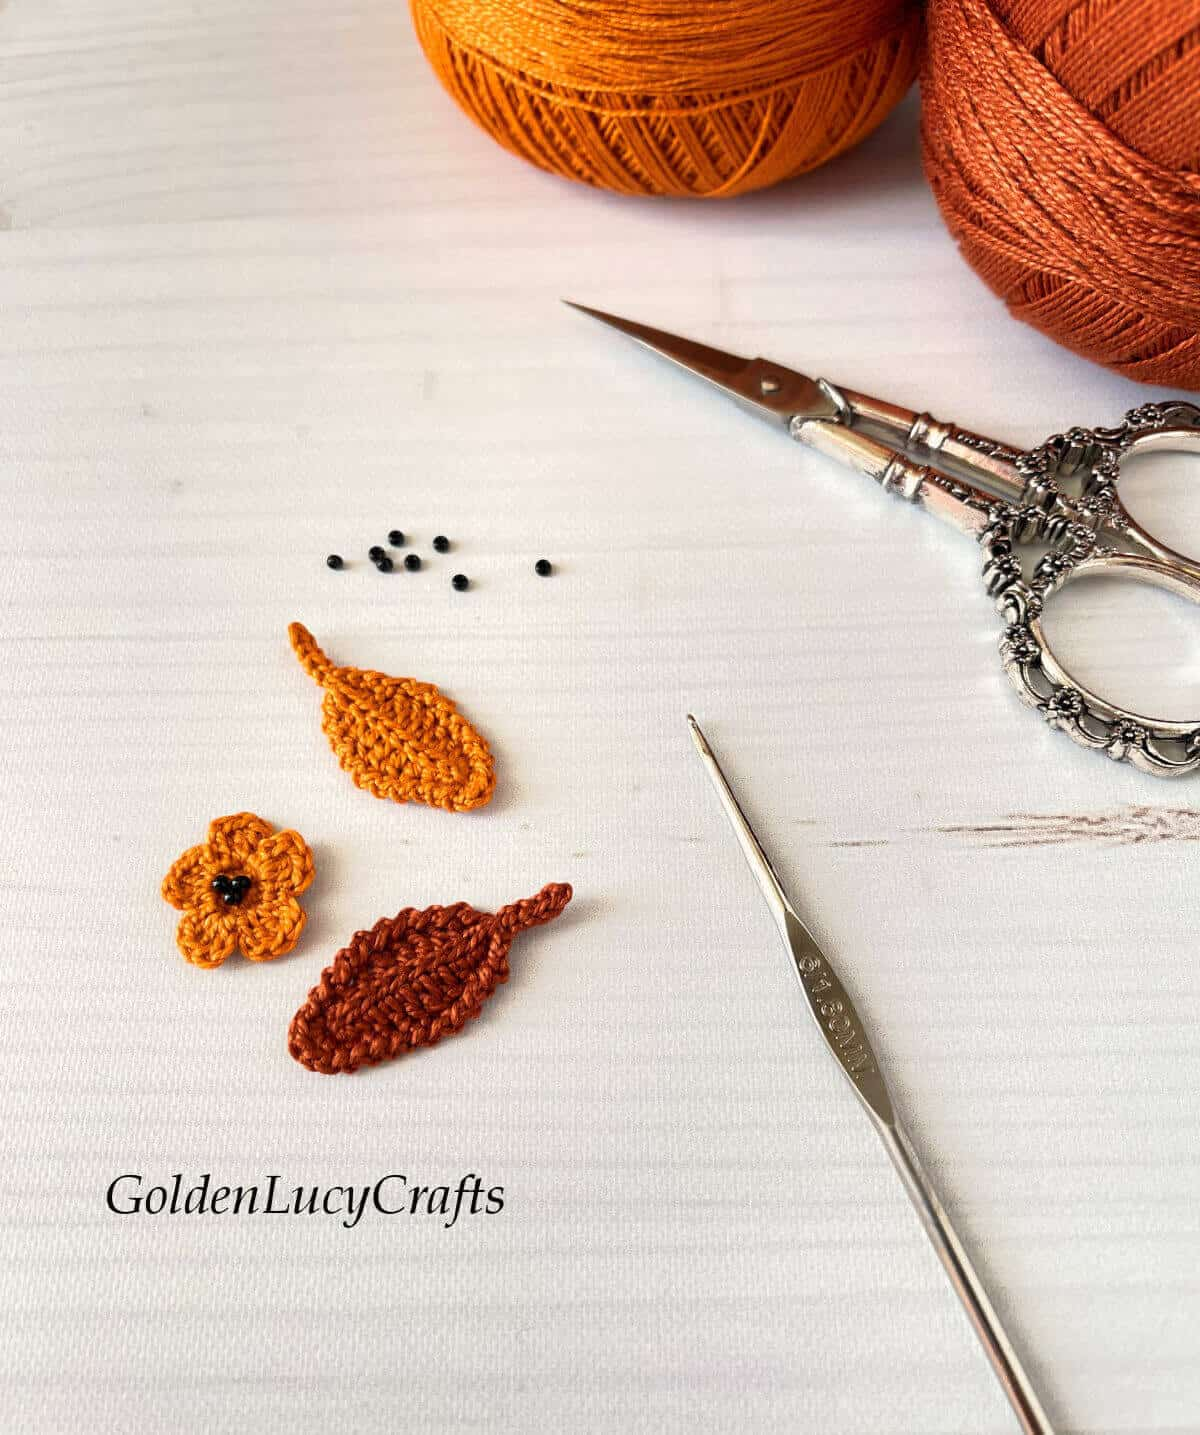 Crocheted flower, two leaves, tiny beads, crochet hook, scissors and two balls of threads.